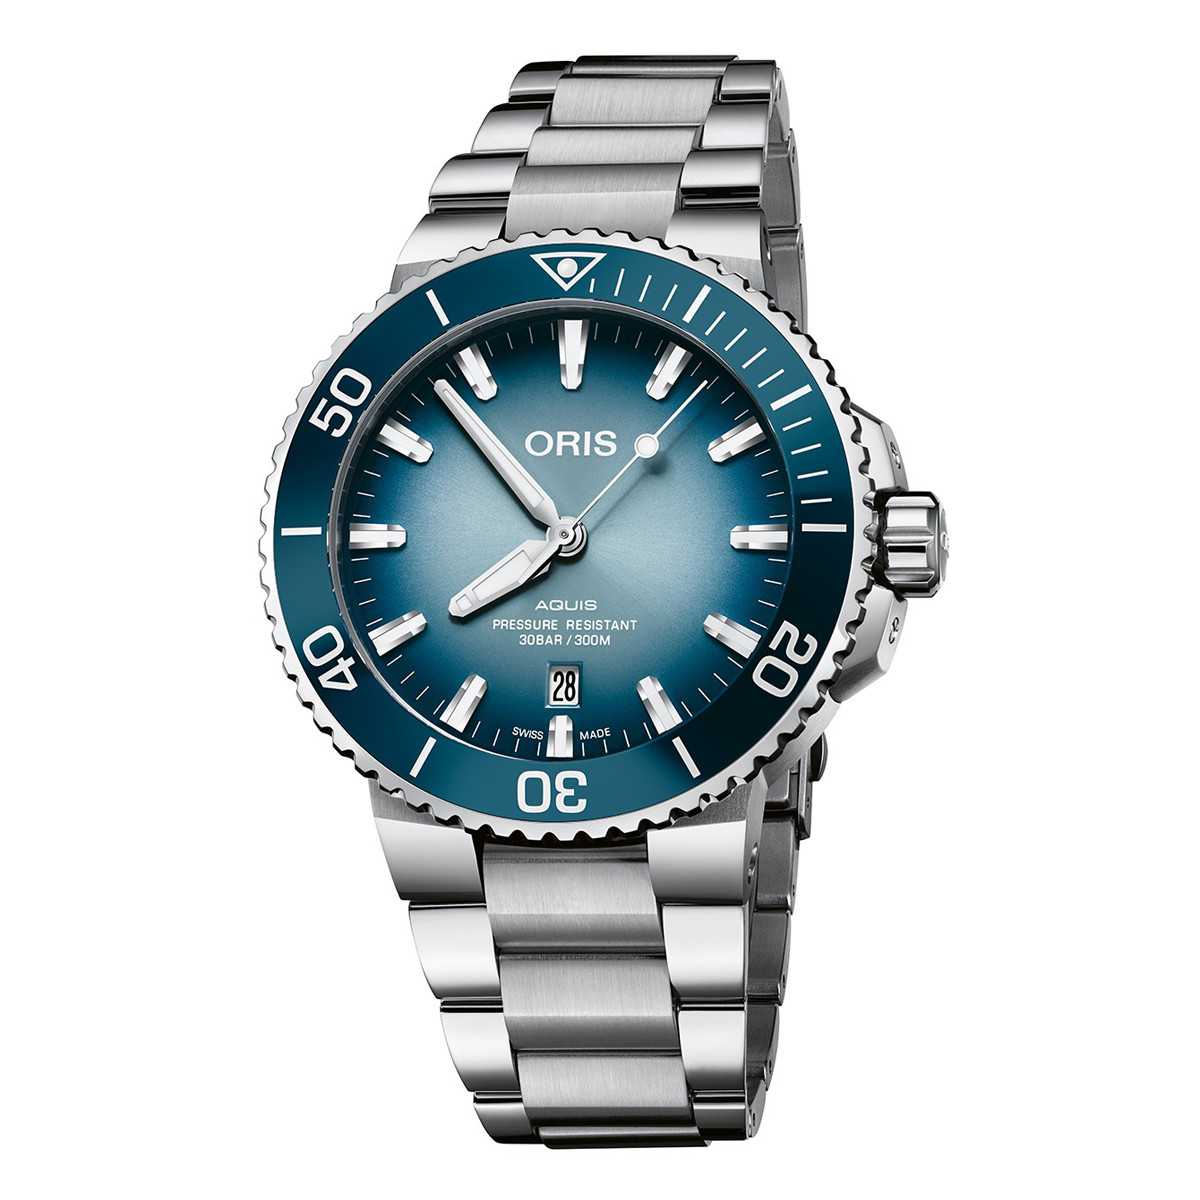 Aquis Lake Baikal Limited Edition (733.7730.4175)